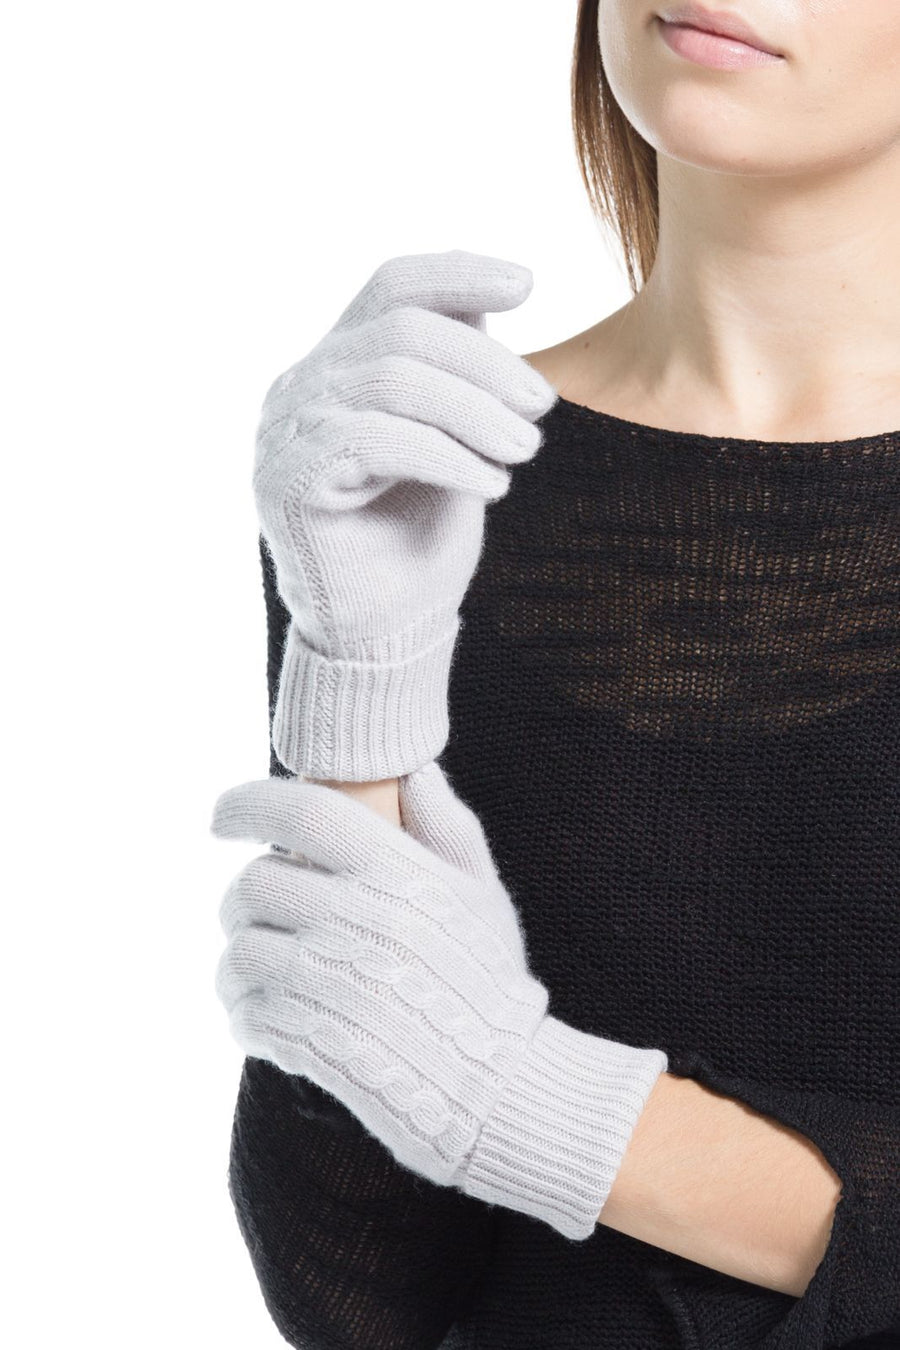 b1d2e7c5870 Women's 100% Pure Cashmere Cable Knit Gloves - Fishers Finery